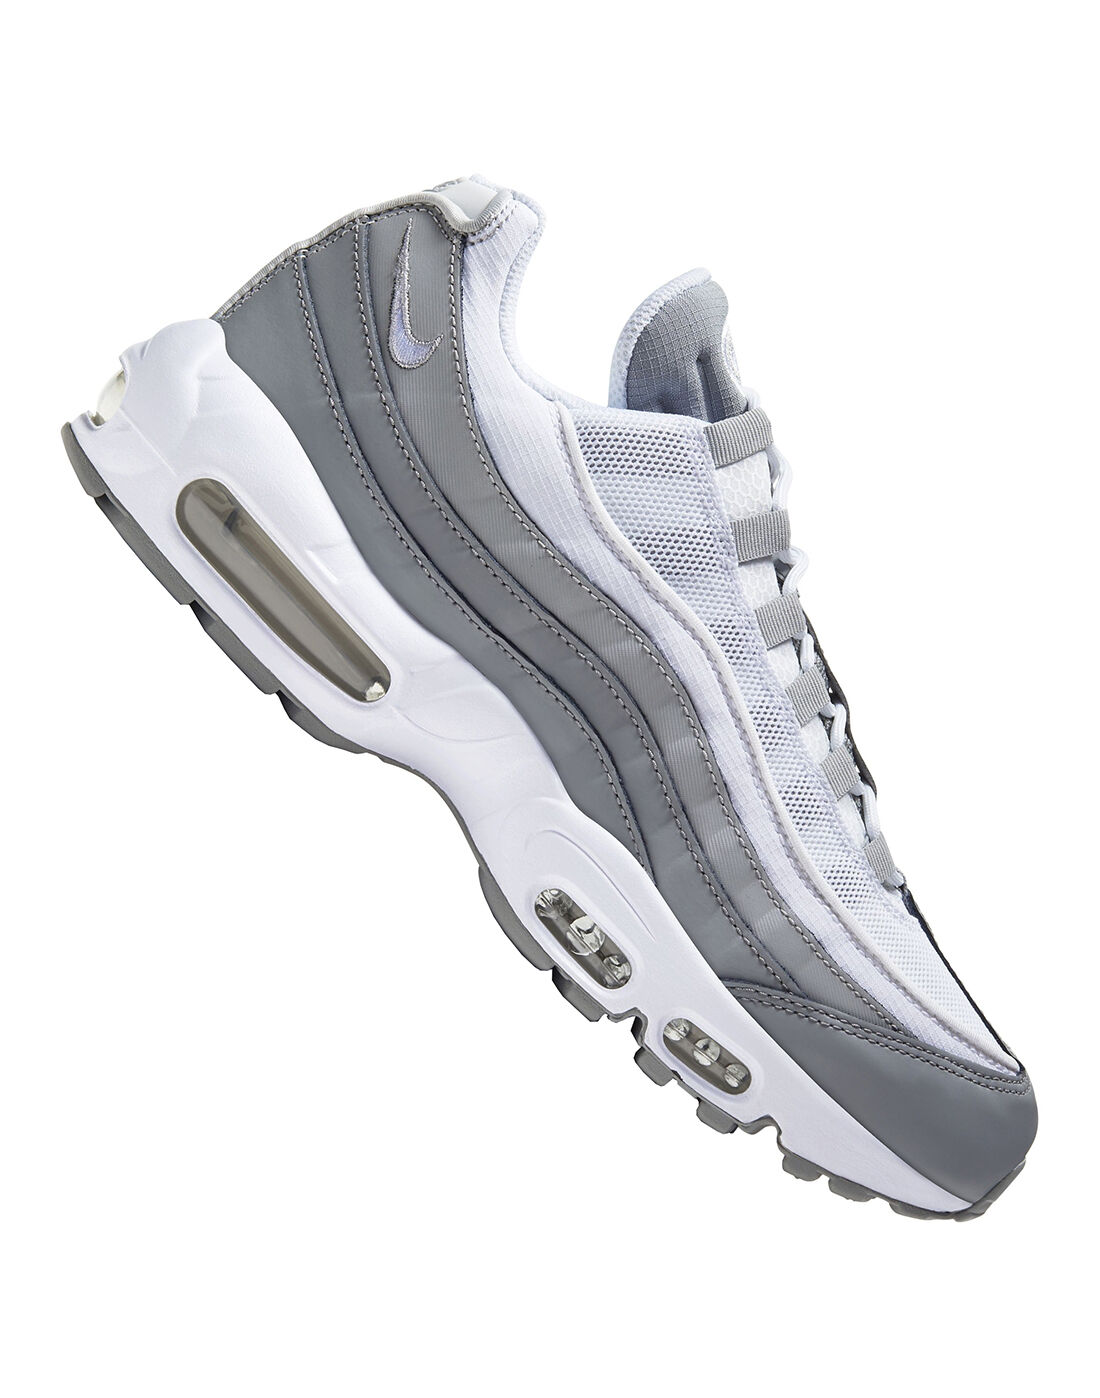 Nike latest adidas sneakers peach girls images free | Mens Air Max 95 Essential